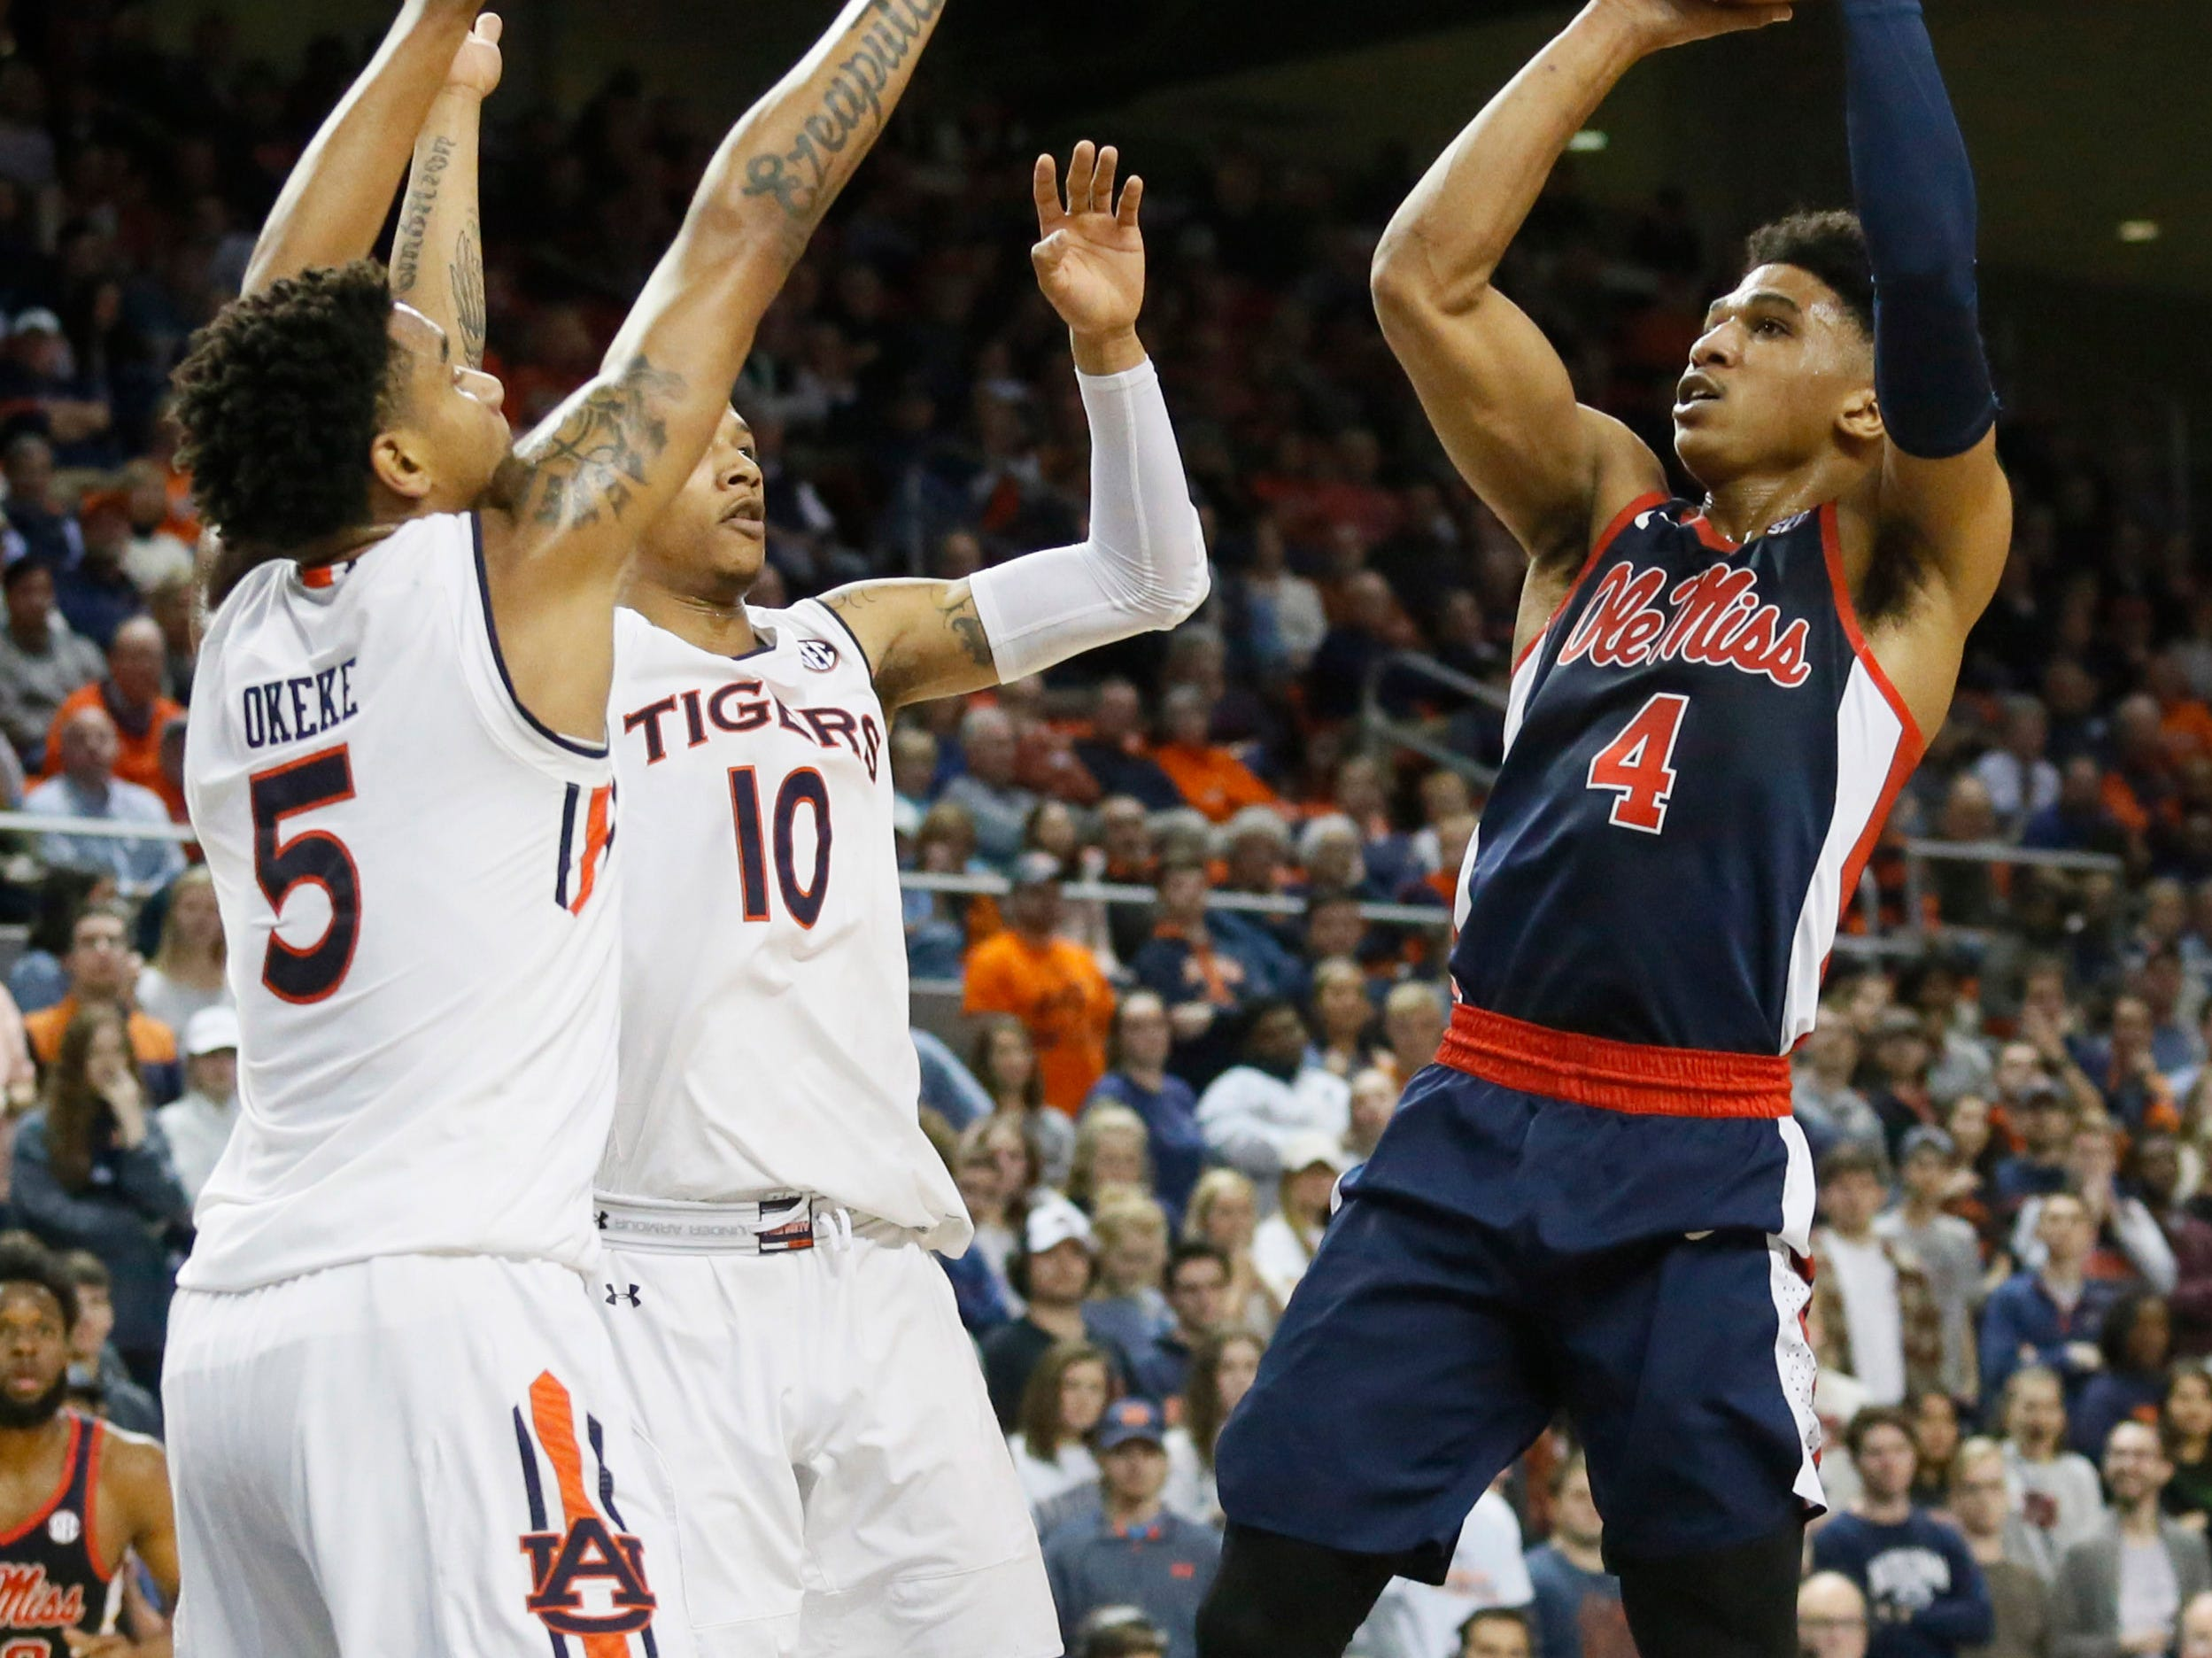 Feb 13, 2019; Auburn, AL, USA;  Ole Miss Rebels guard Breein Tyree (4) takes a shot against the Auburn Tigers during the first half at Auburn Arena. Mandatory Credit: John Reed-USA TODAY Sports